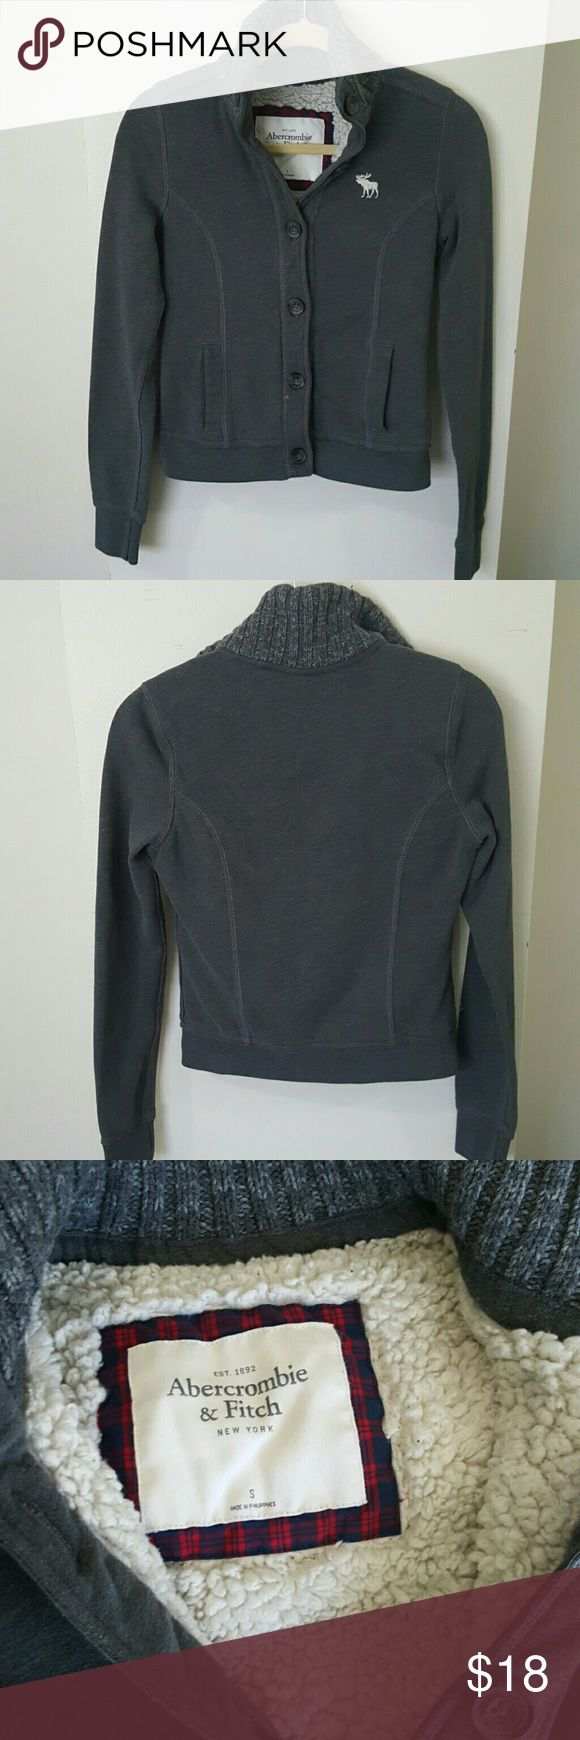 Abercrombie and fitch sweater jacket Grey Abercrombie and fitch jacket  Size: Small  6 button closure   Very warm and cozy Abercrombie & Fitch Jackets & Coats